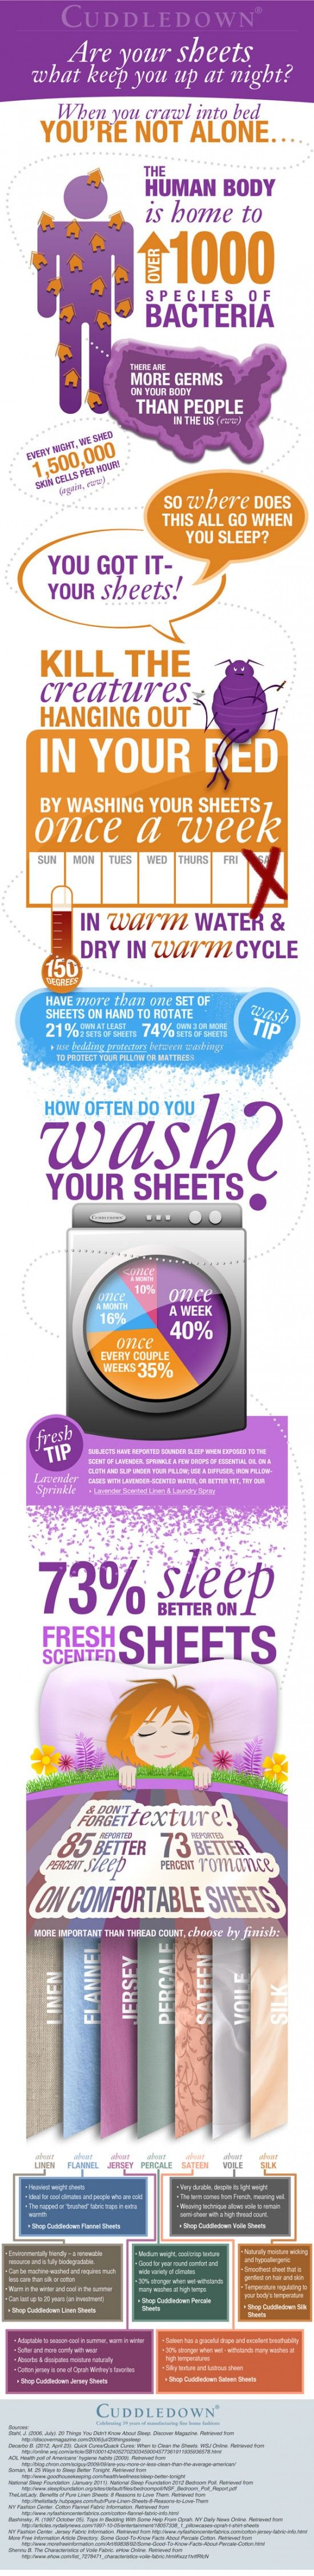 INFOGRAPHIC: ARE YOUR SHEETS WHAT KEEP YOU UP AT NIGHT?    Do you keep your bed crisply starched to military specifications, or rumpled, messy and questionably clean? Or somewhere in between? Cuddledown has created this fun-to-read infographic all about the horrors of unwashed sheets, and the sleep benefits of a fresh, clean bed.